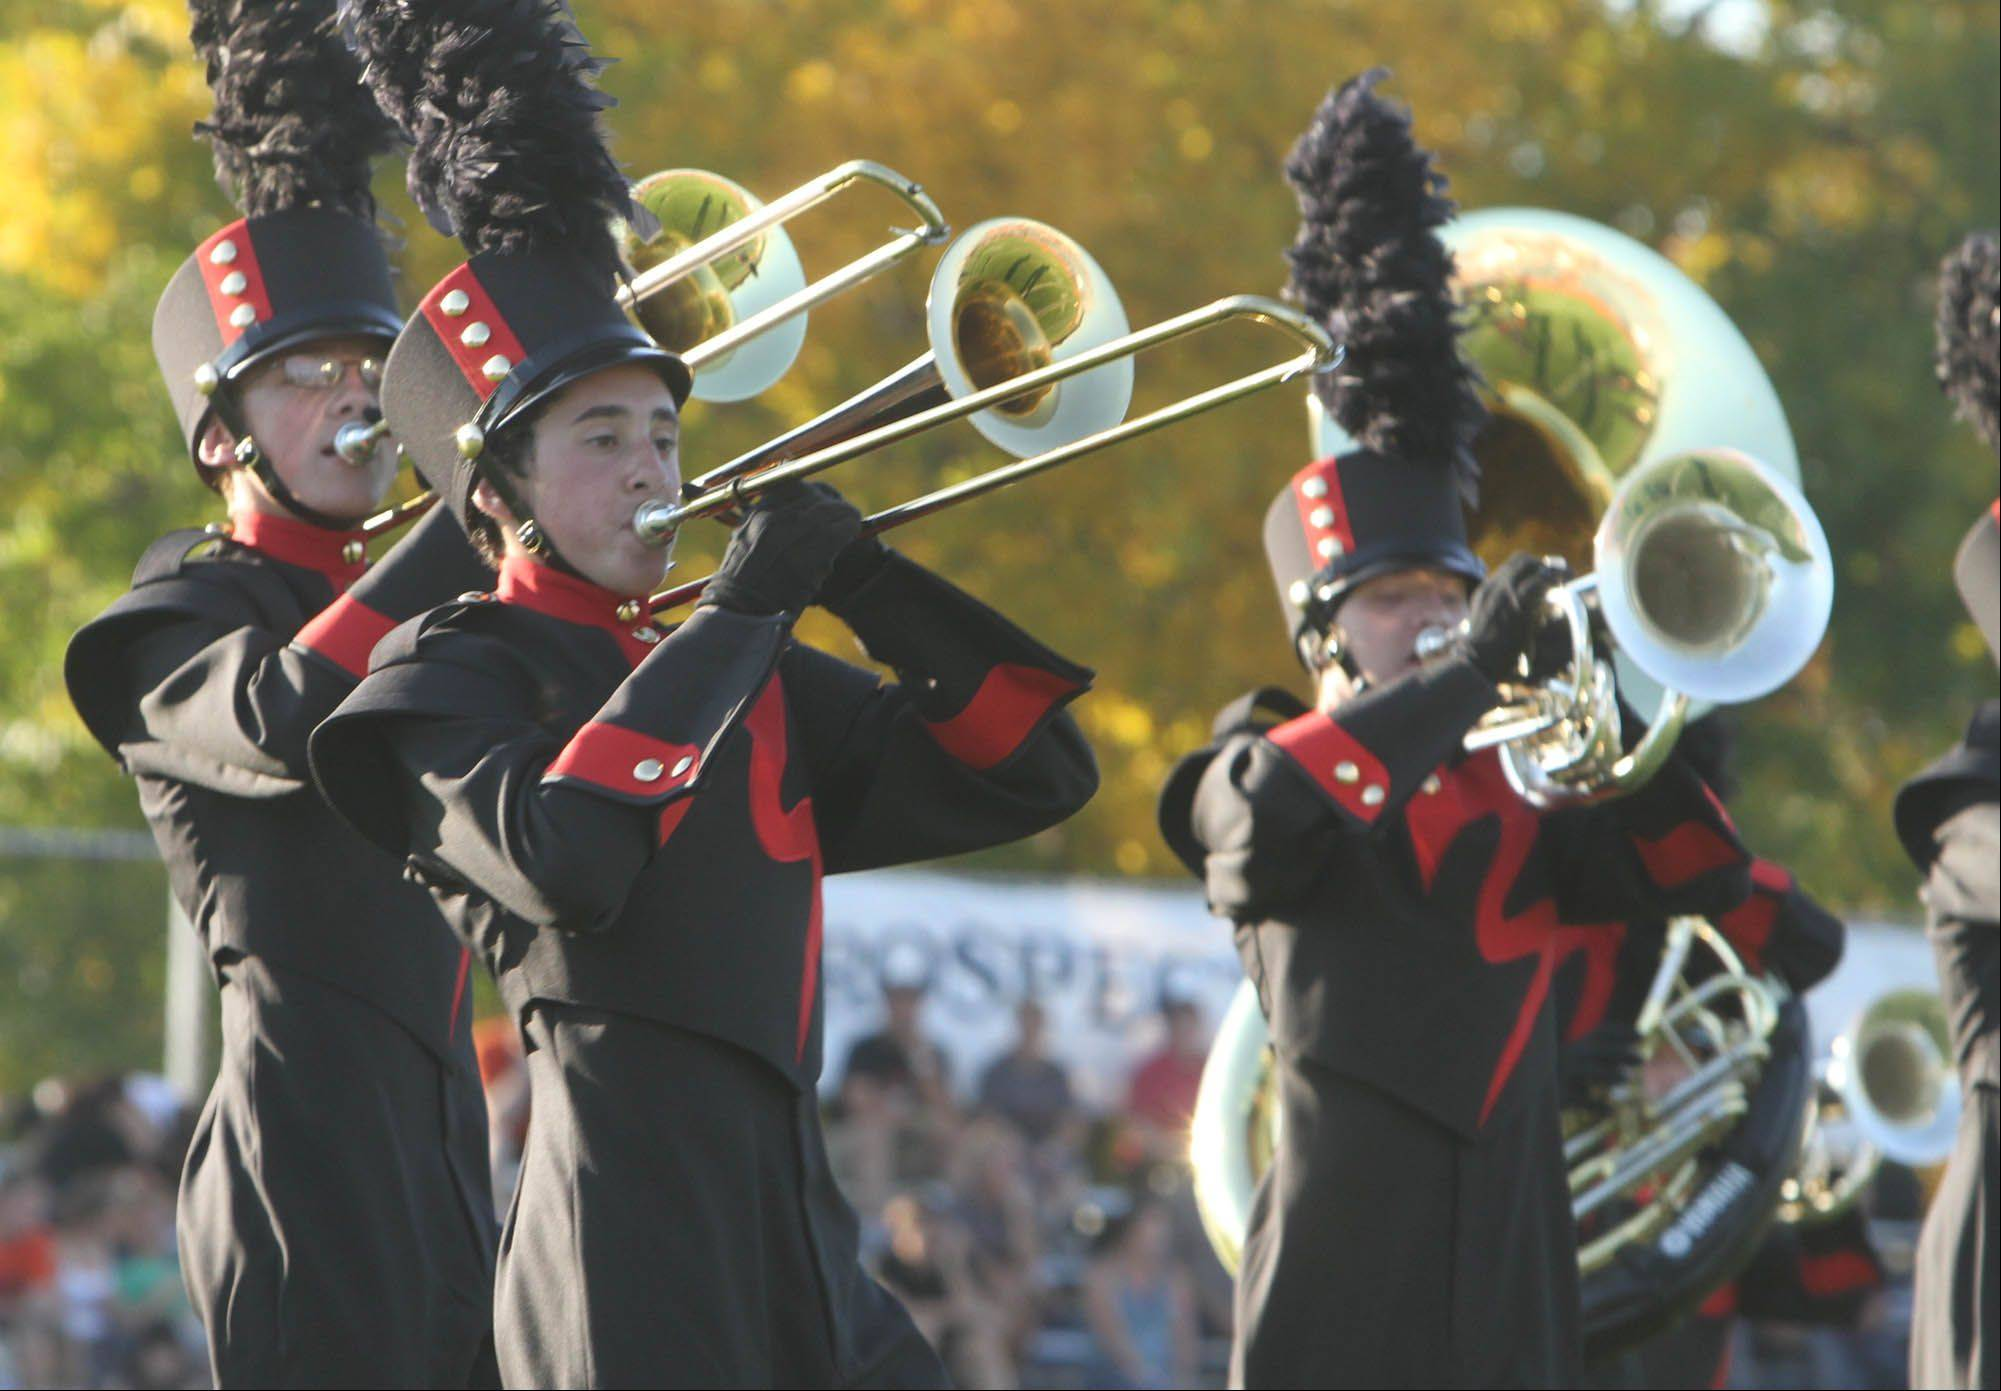 The Marching Bulldogs finished fifth overall -- out of 26 bands competing -- at the Knight of Champions marching band competition at Prospect High School.